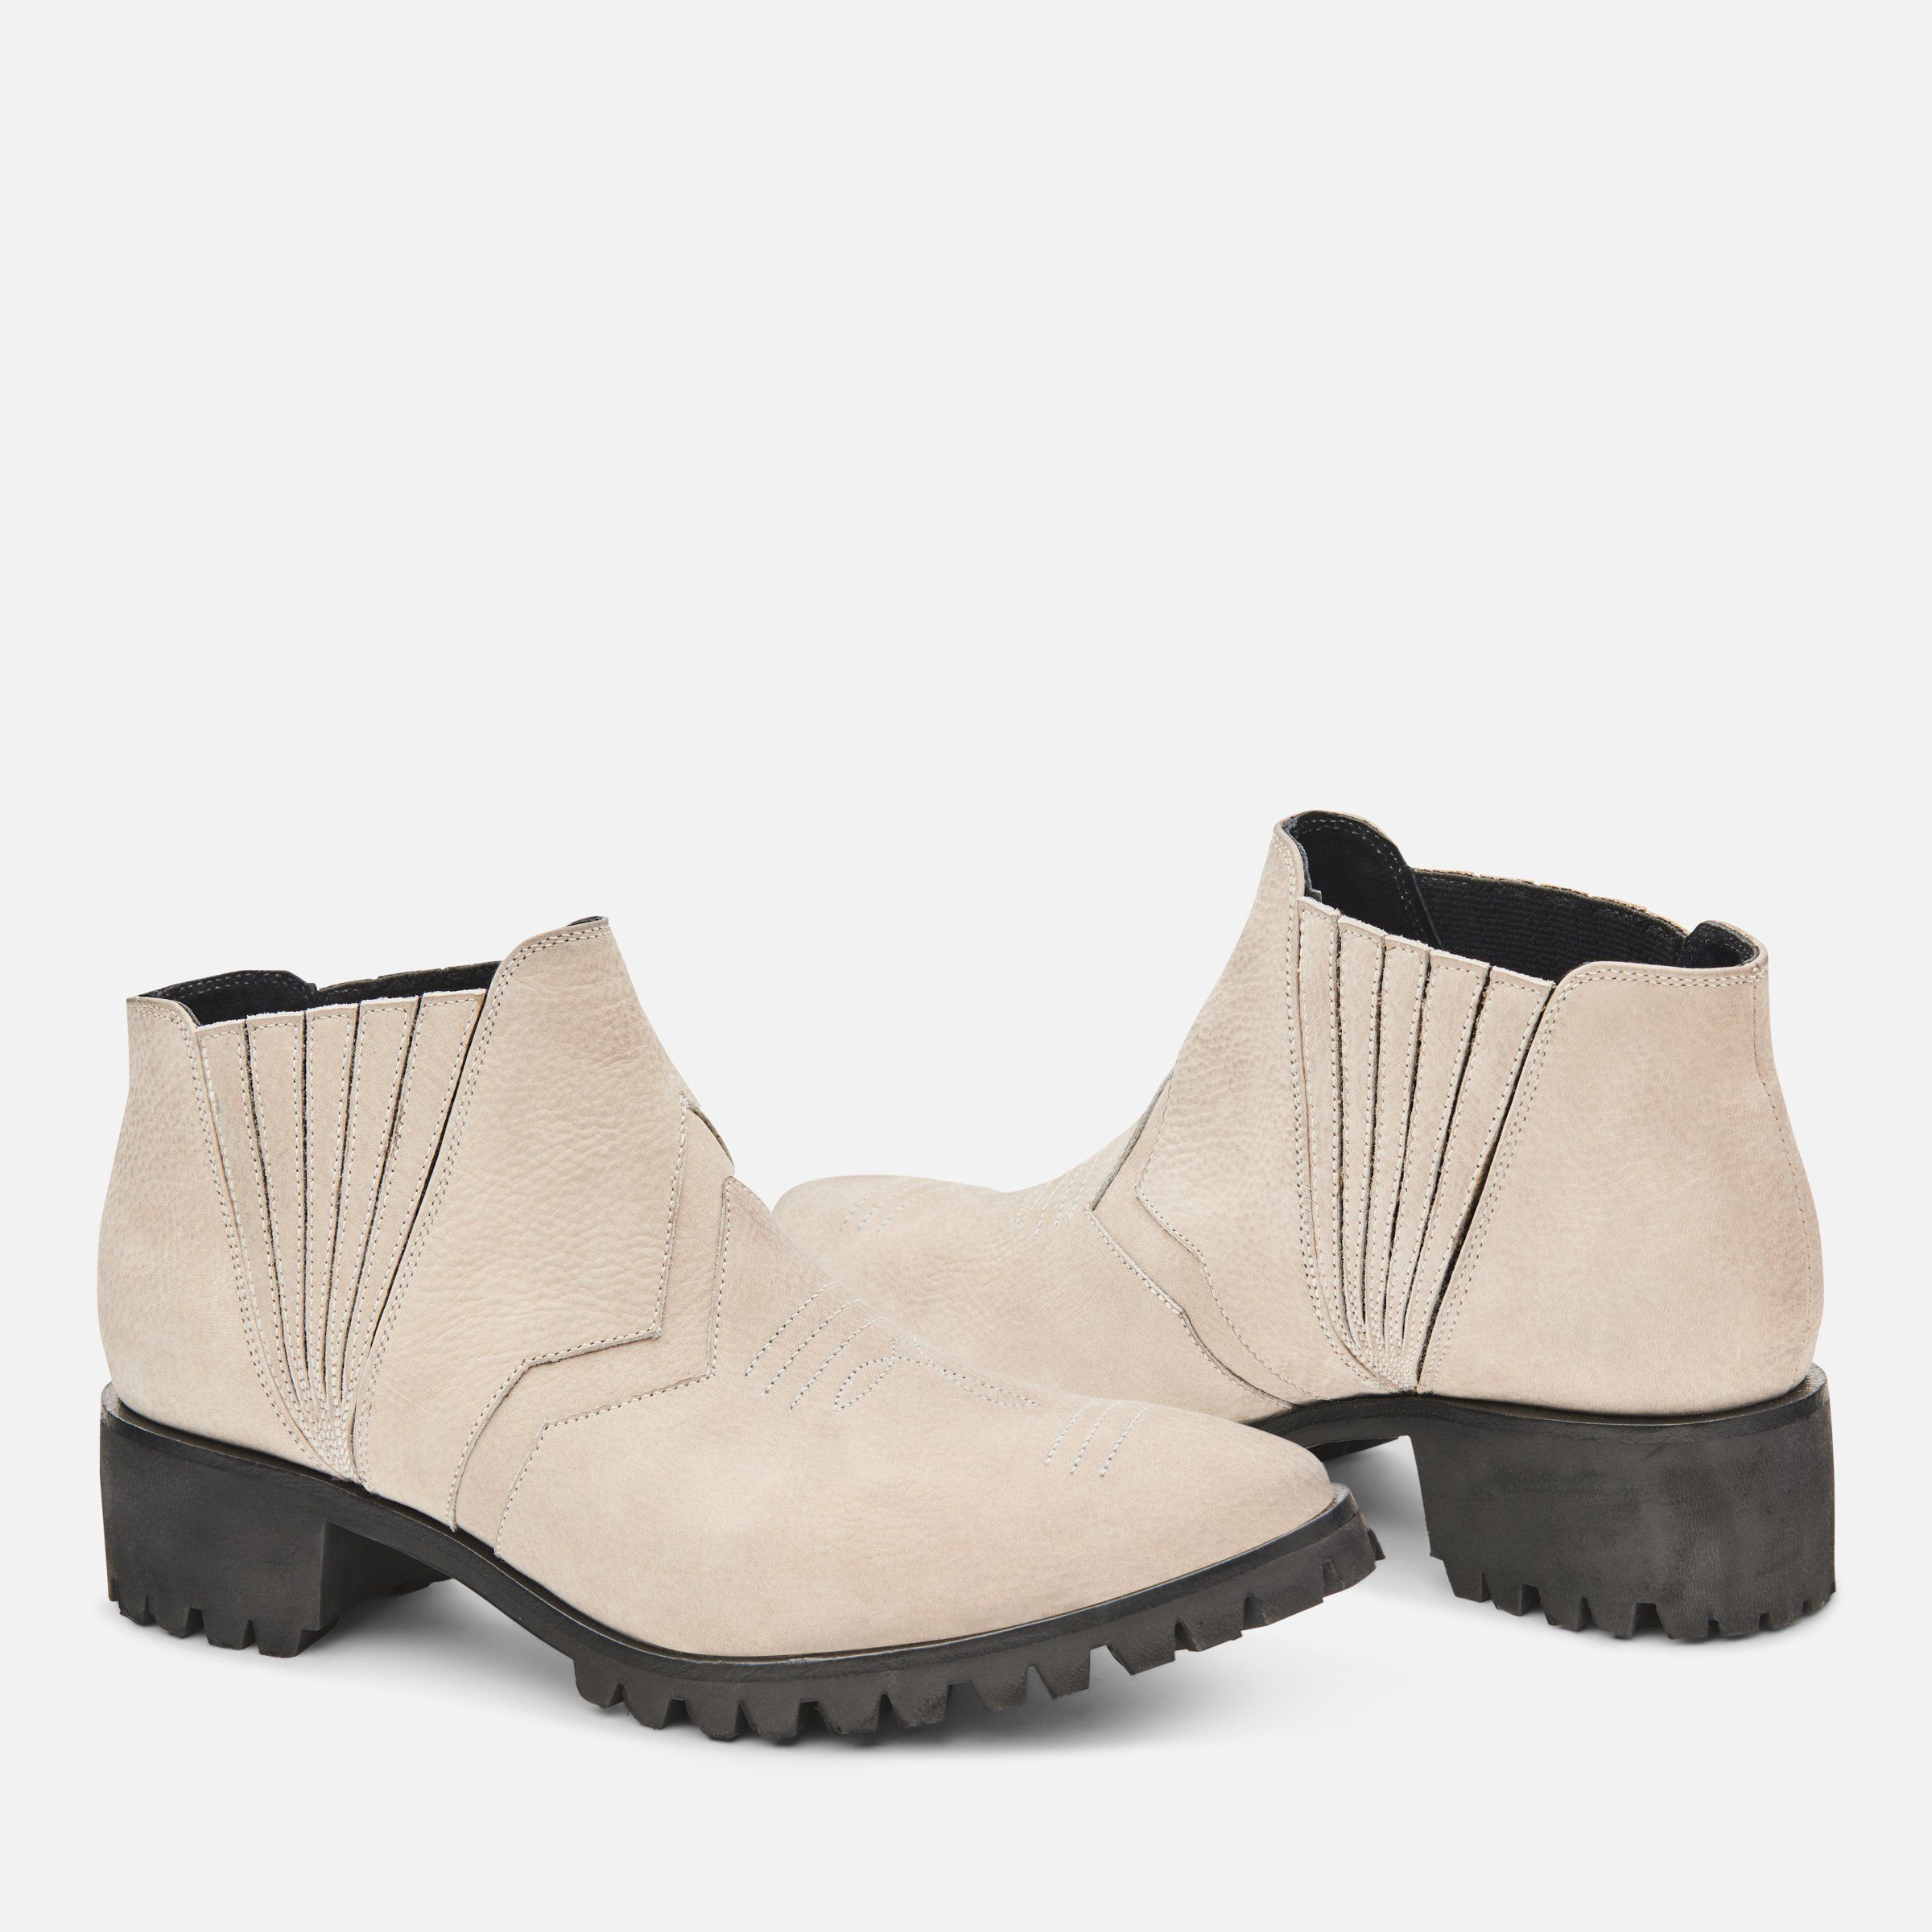 DOLLY BOOTIE W/ BHBR LUG SOLE